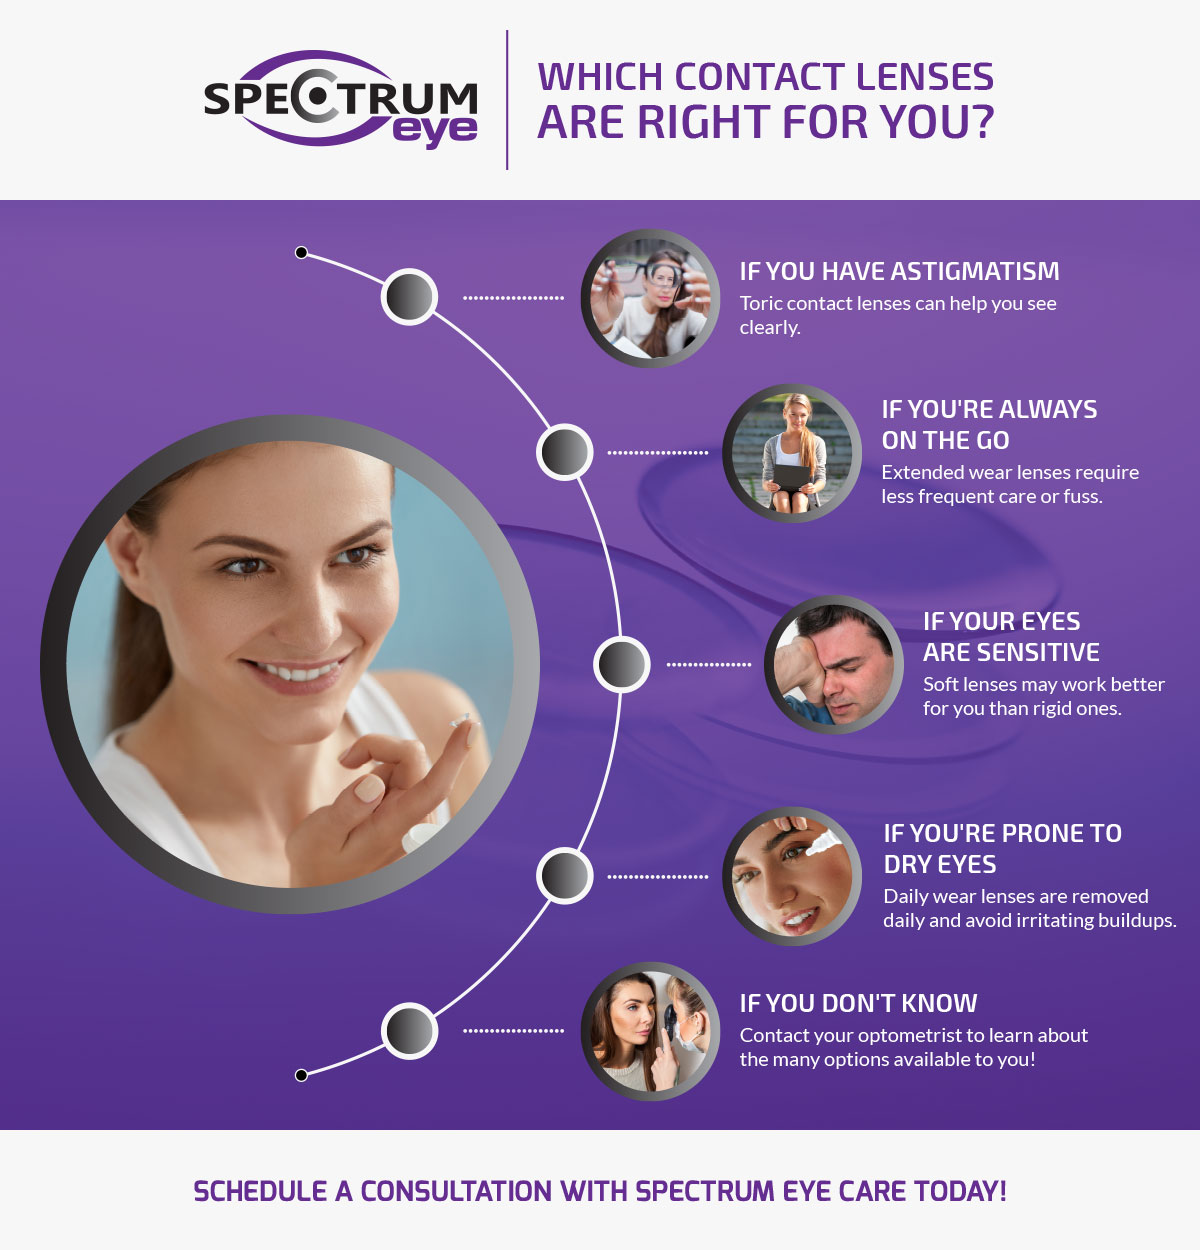 Which Contact Lenses Are Right For You Infographic